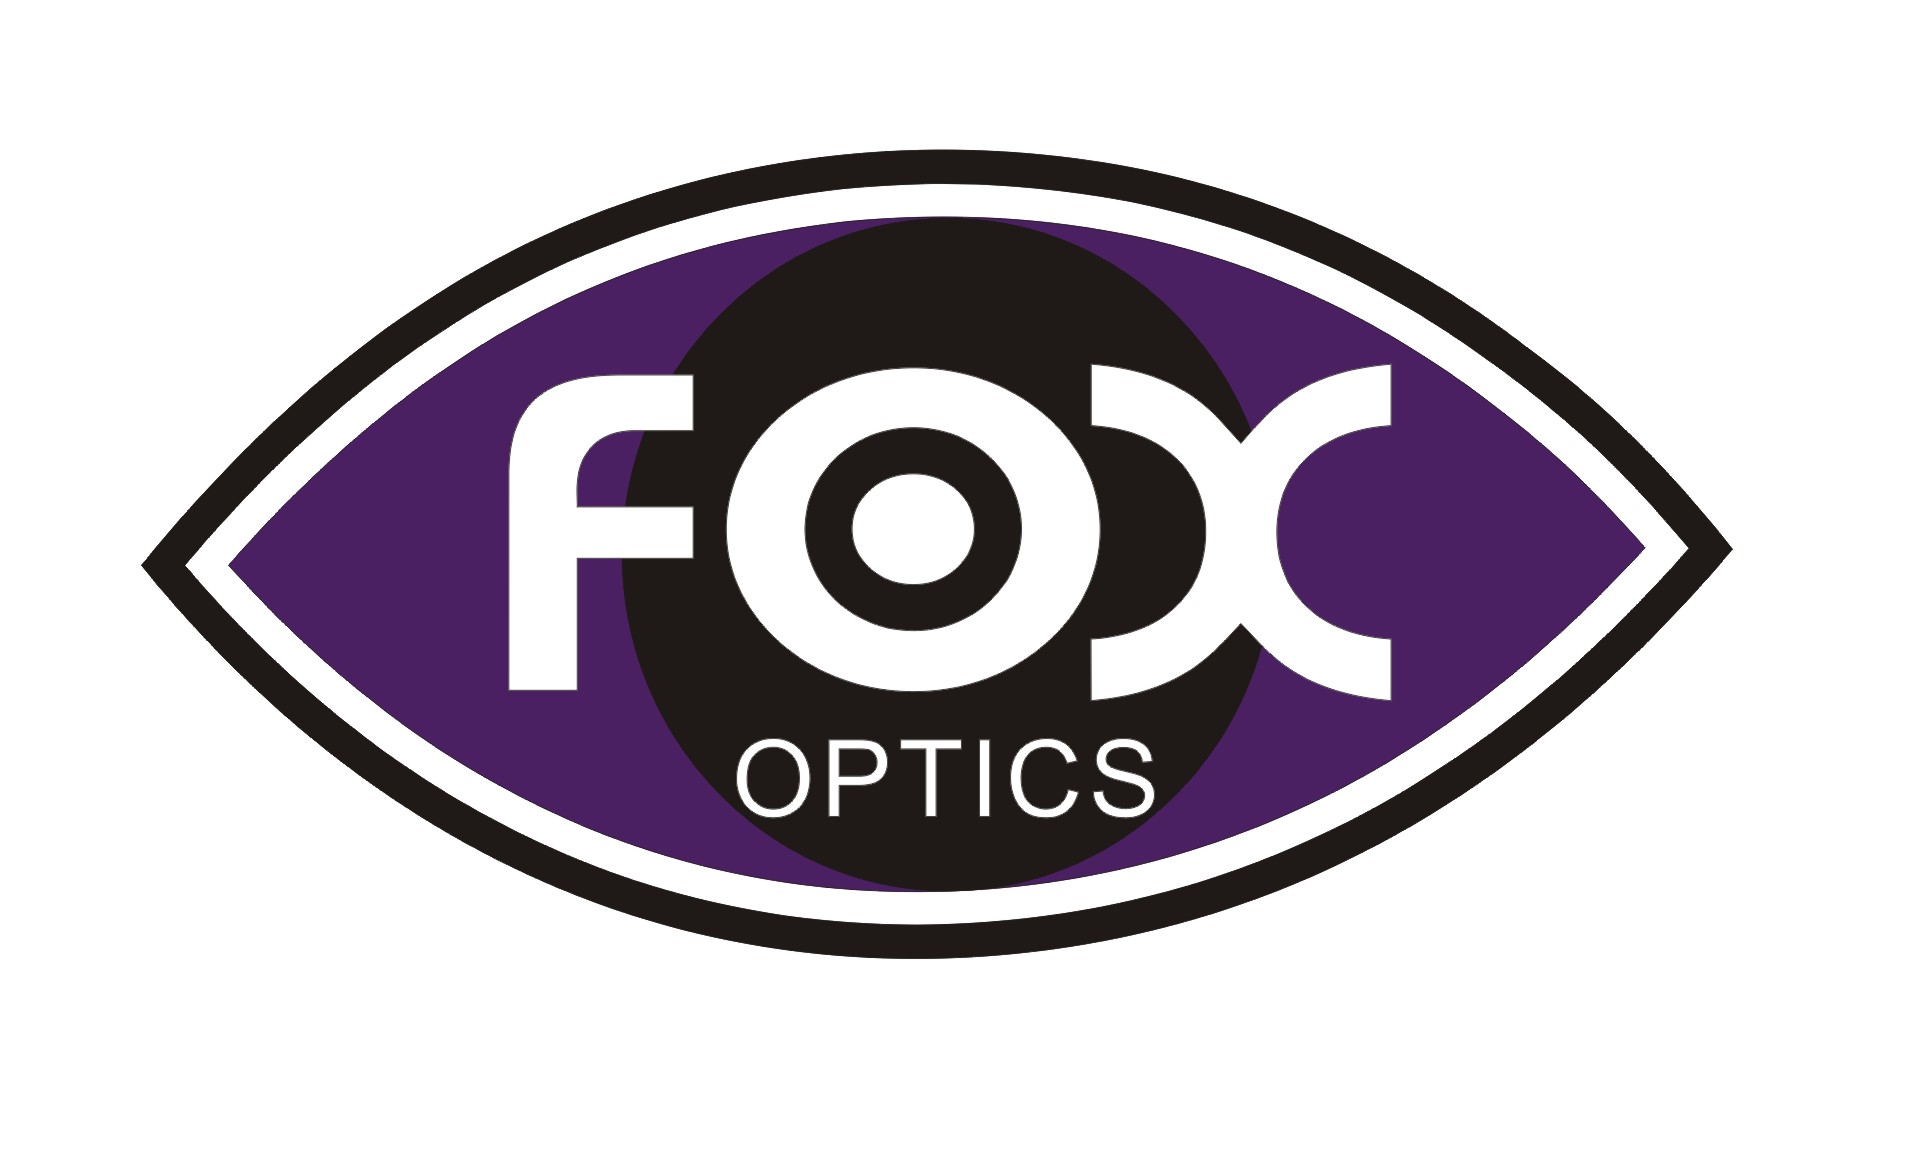 FOX OPTICS INC.